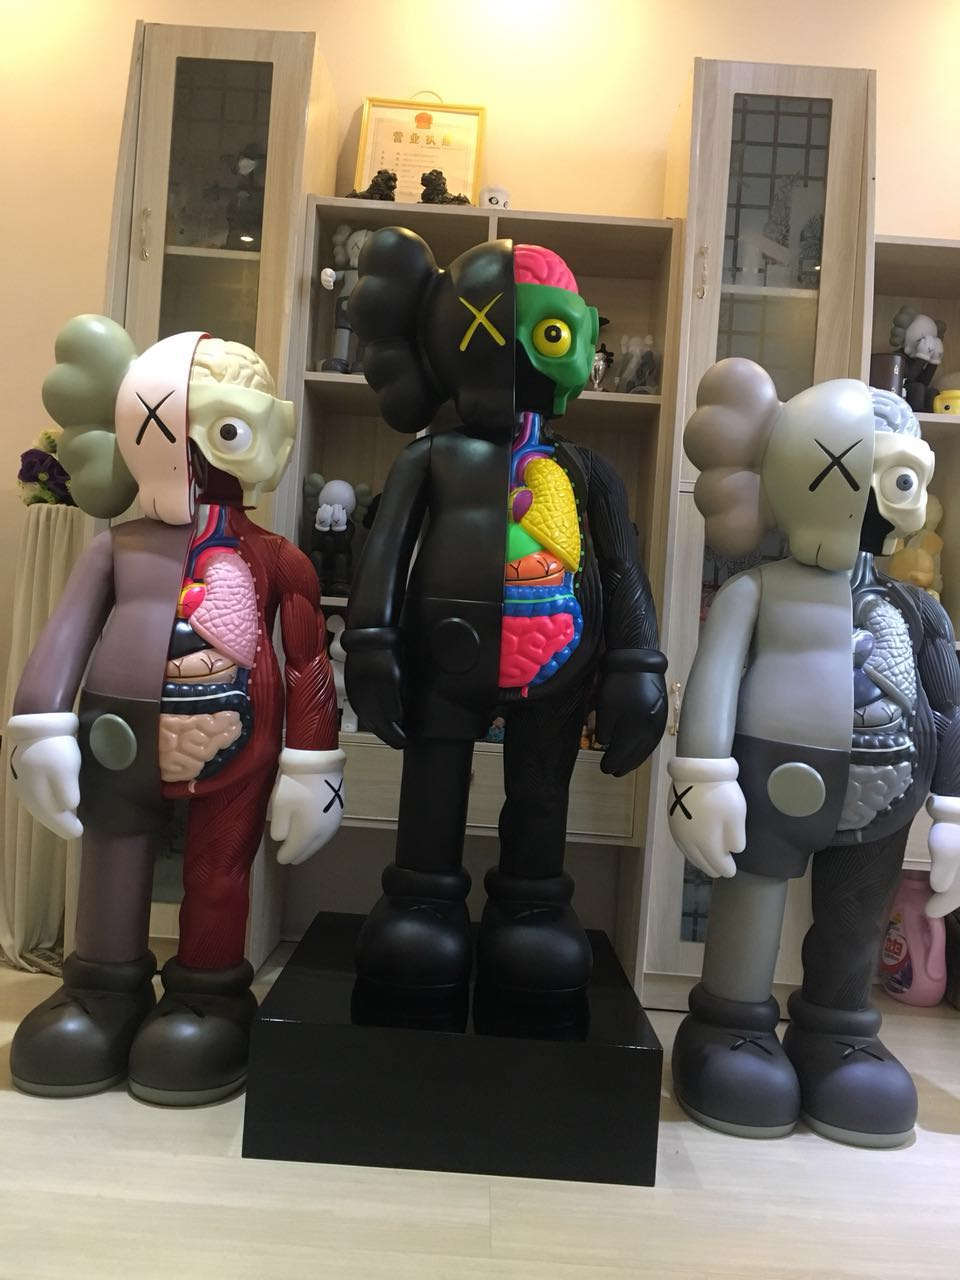 [New] Original fake KAWS 130cm 4ft kaws dissected 1:1 collection action figures toy OriginalFake model Home Decoration gift цена